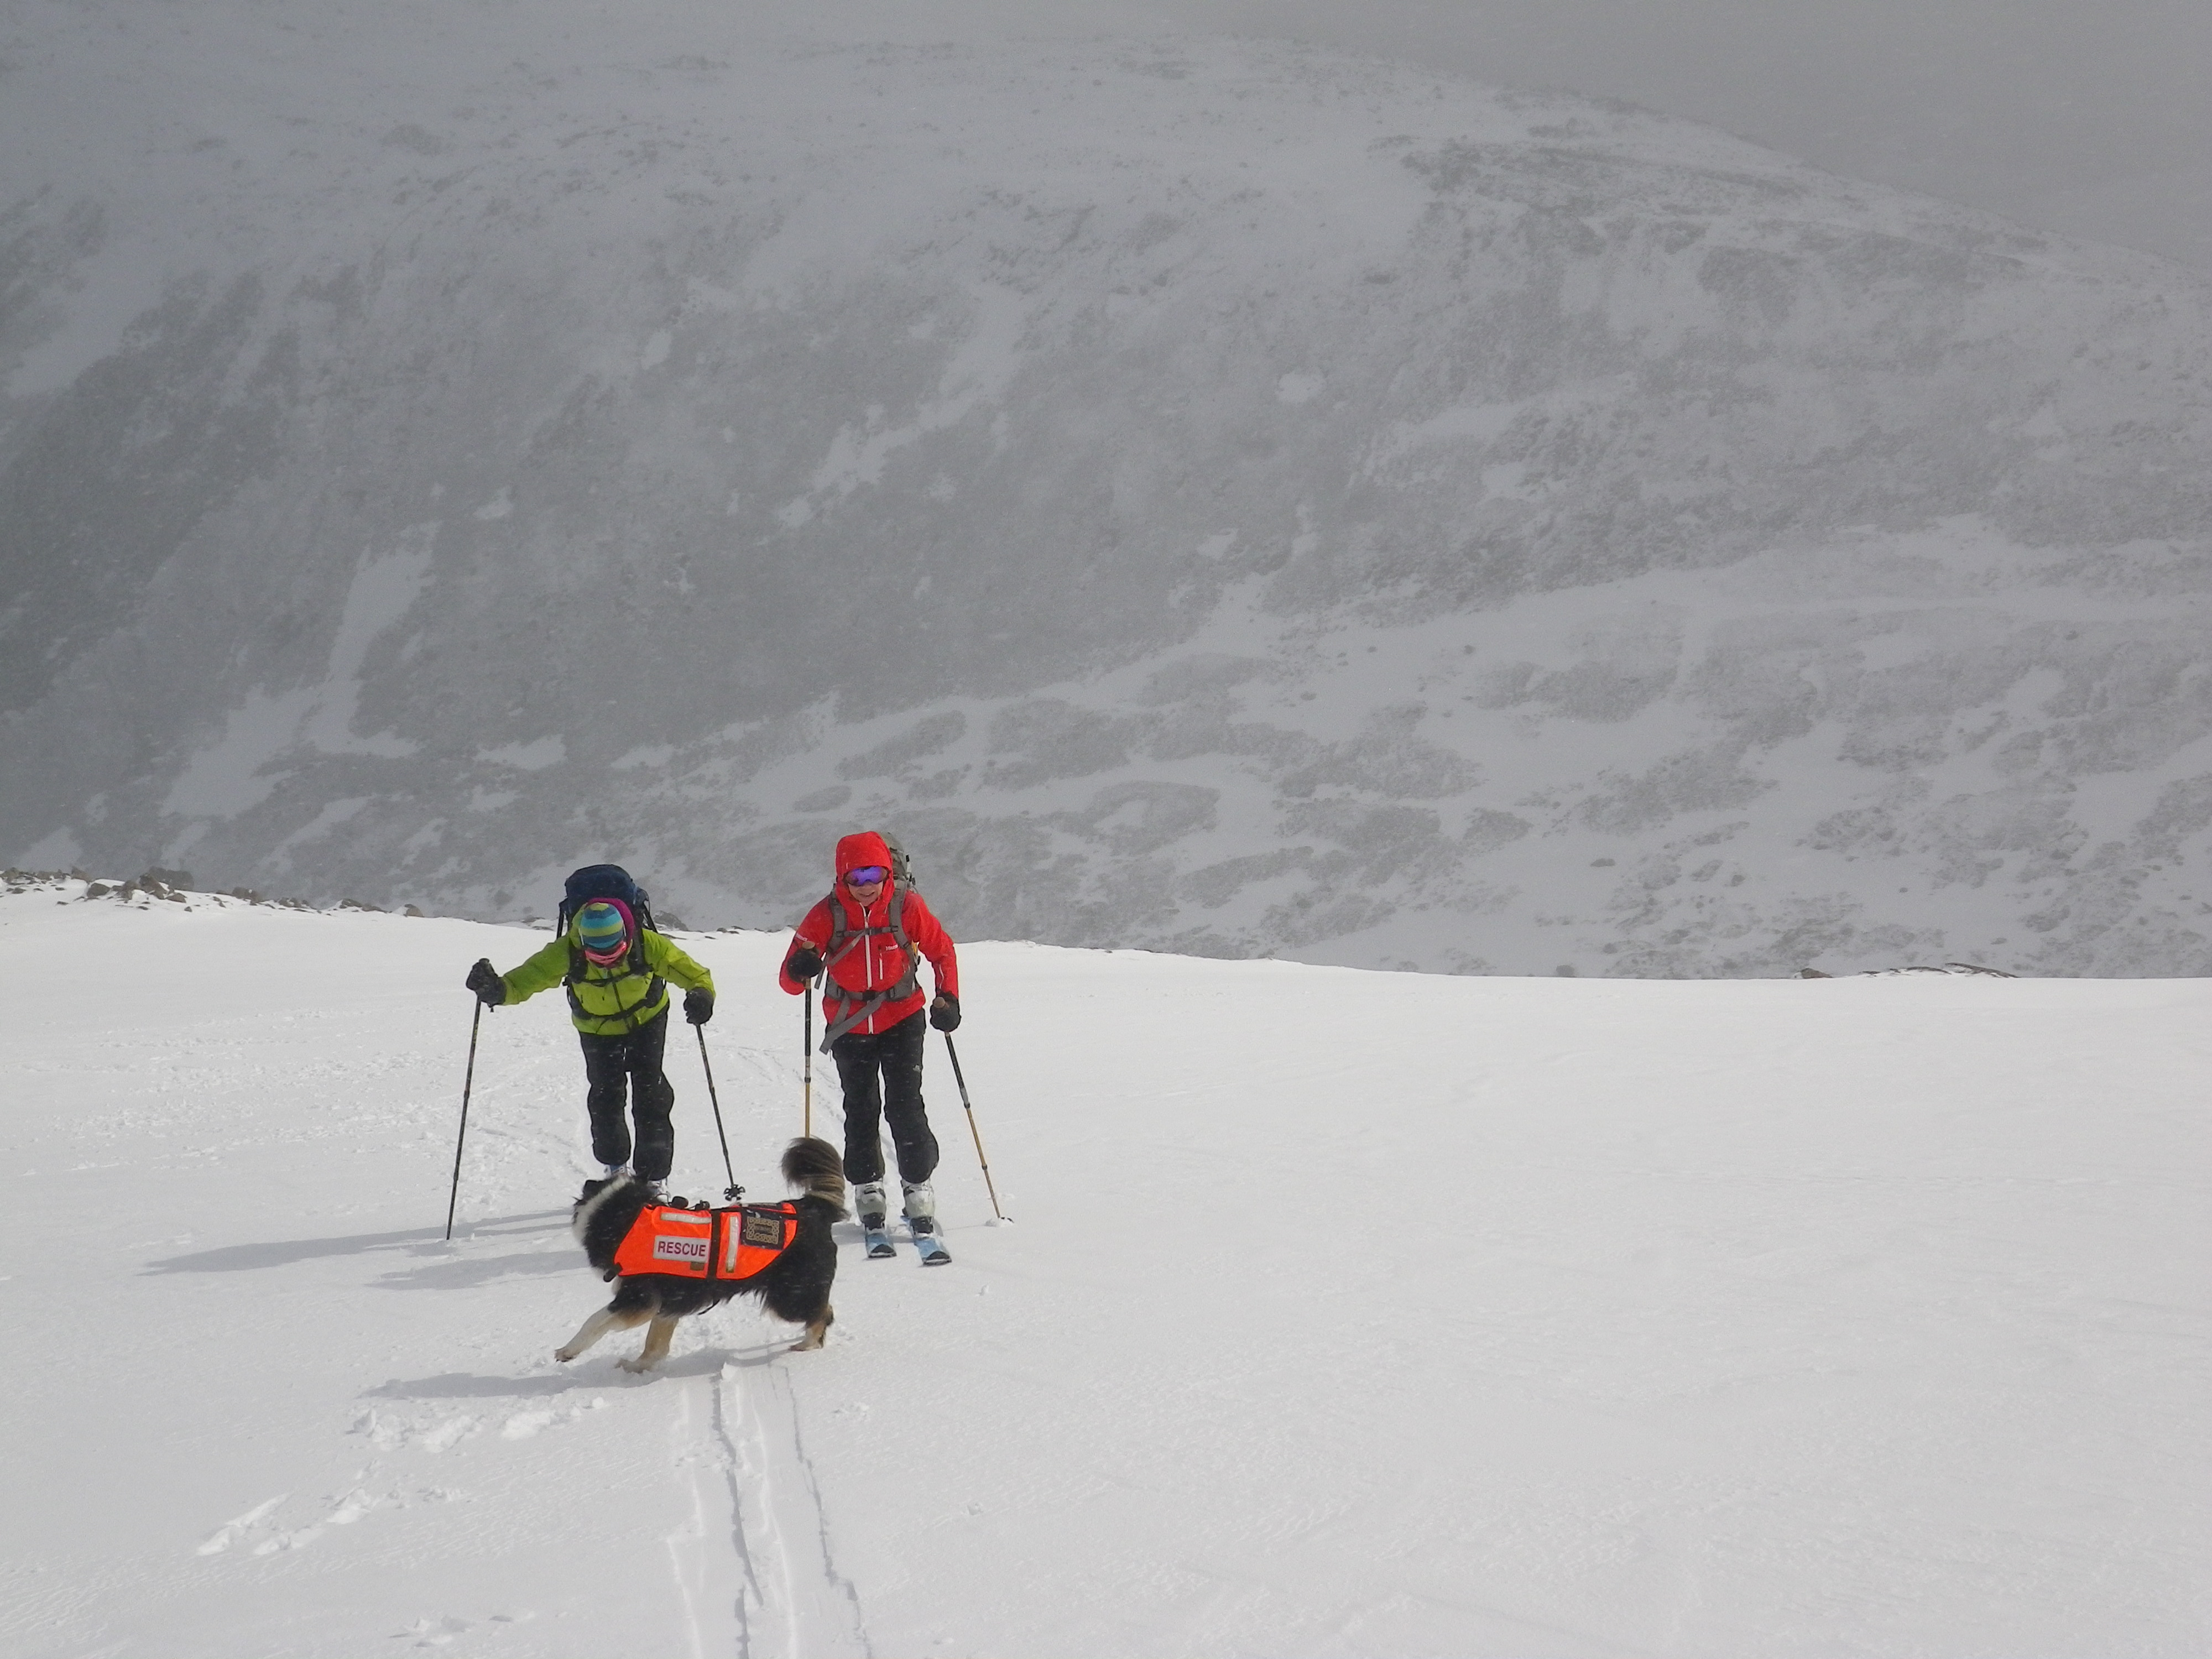 The East side of Cairngorm